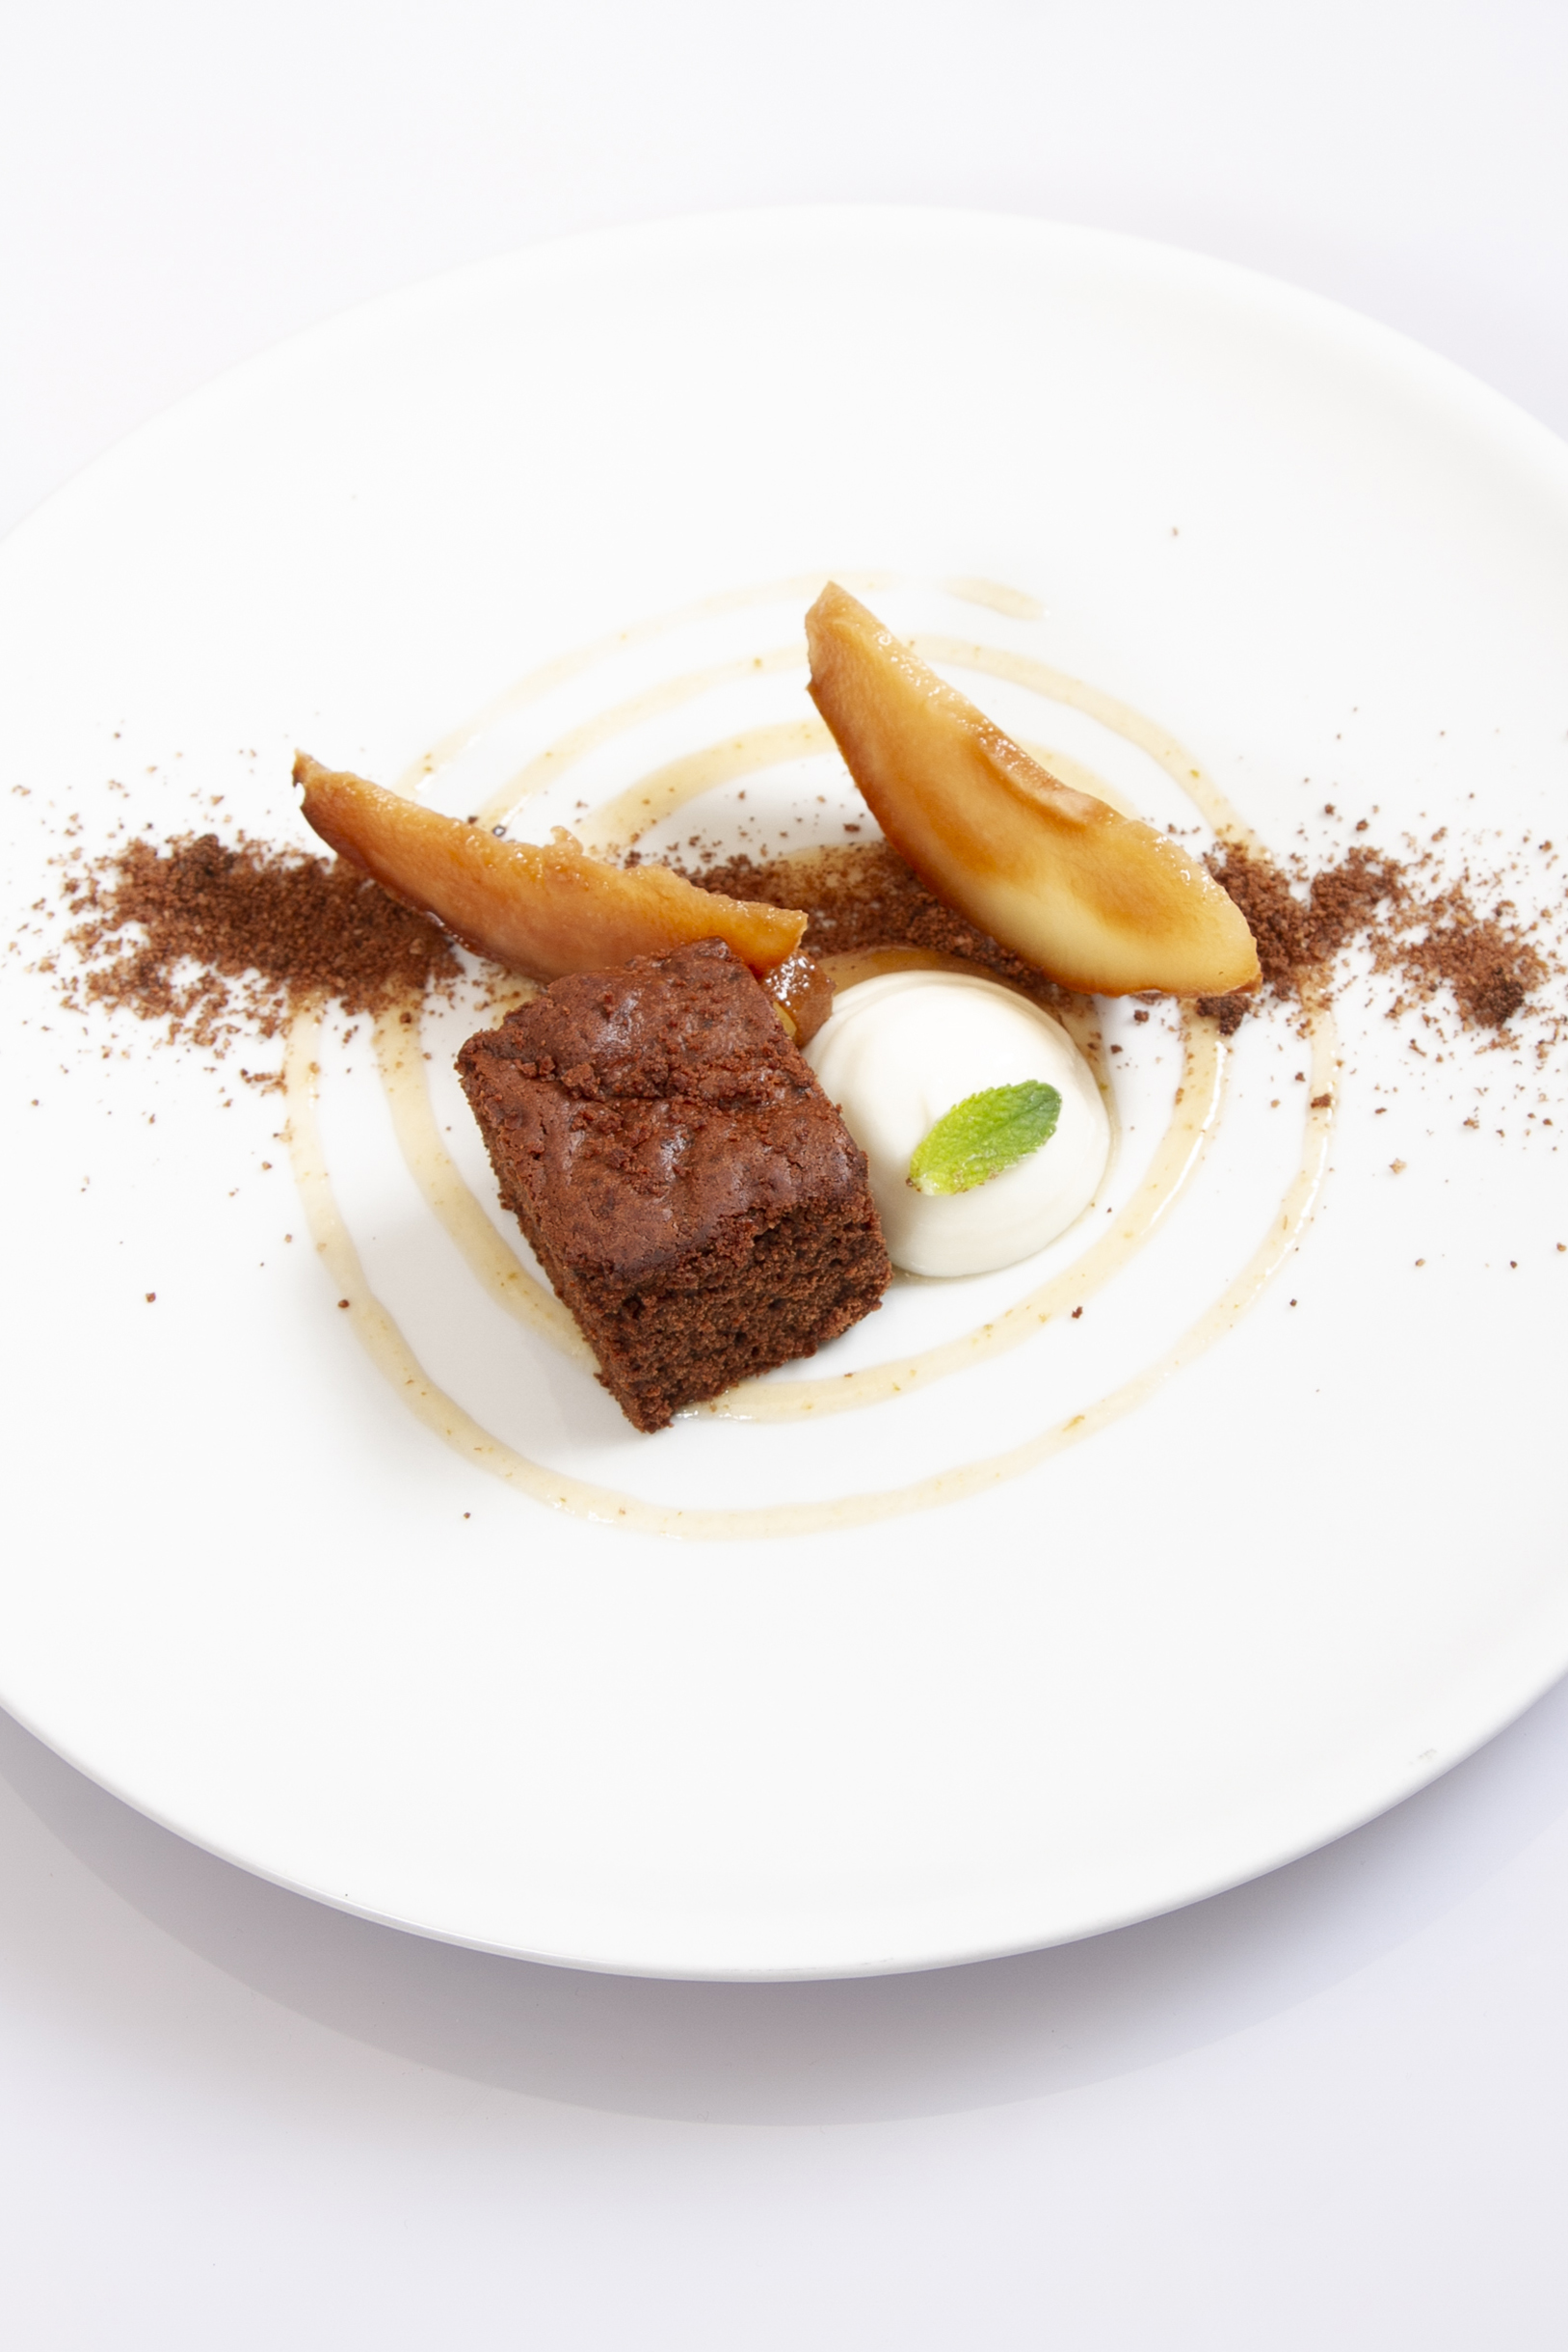 Pear & chocolate cake with ricotta mousse